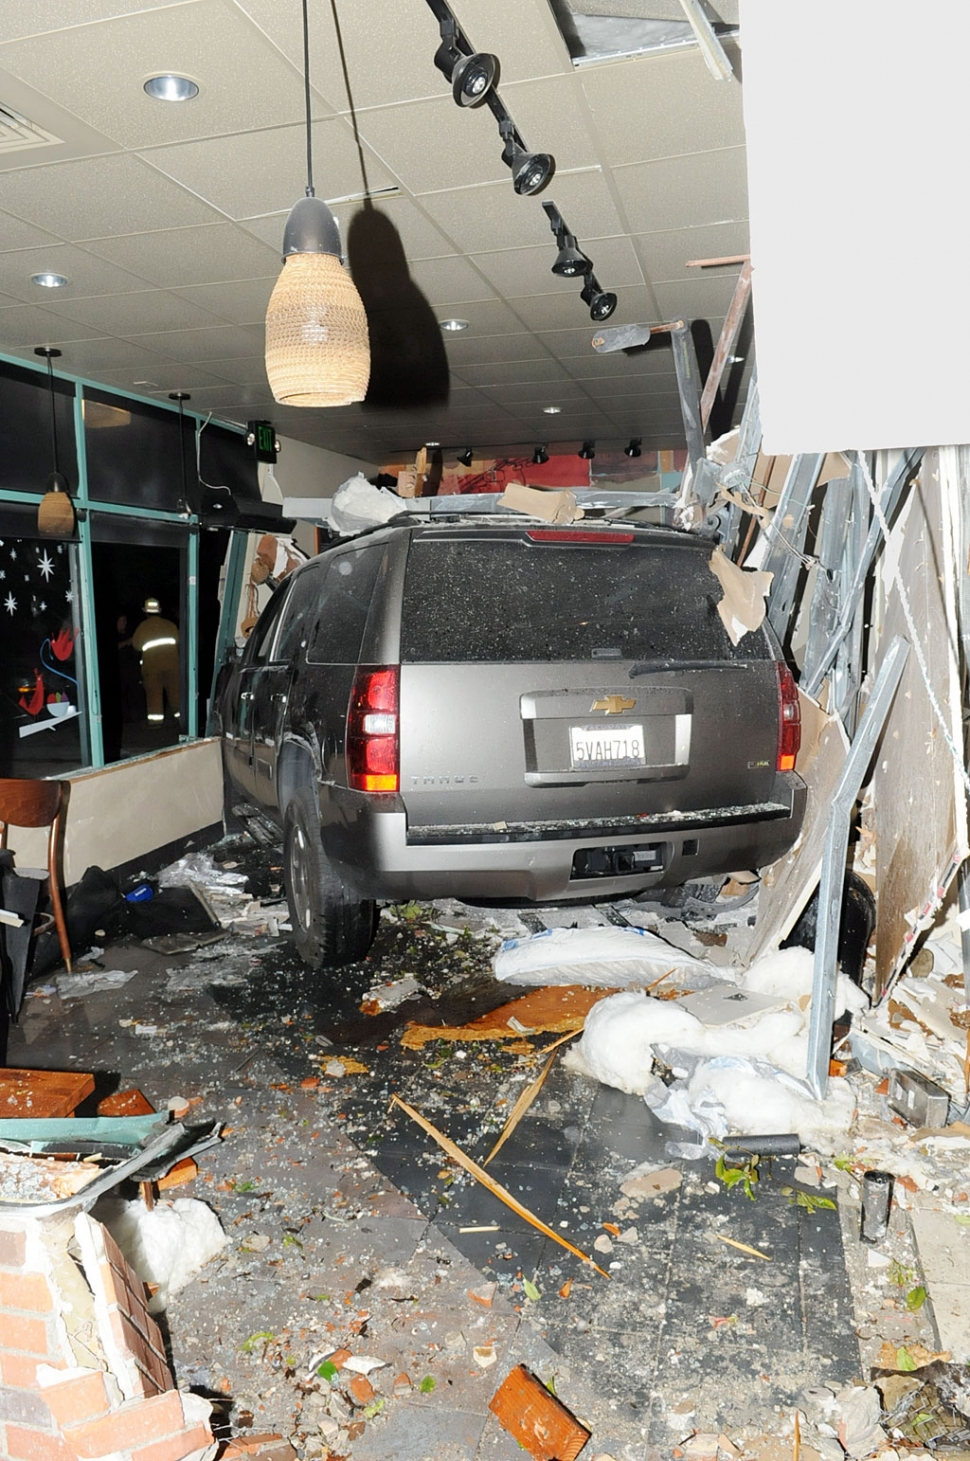 At approximately 7:07 p.m. on Tuesday December 13th, 12 Fillmore Fire units responded to a vehicle collision at Starbucks in Fillmore at the corner of A street and Highway 126. A Chevrolet Tahoe had crashed through the east wall of the business, near the drive thru, pinning several people against tables and walls. Eye witnesses said the vehicle was traveling about 50 miles per hour when it struck the building's exterior wall. The driver identified himself as a Los Angeles Sheriff's Department deputy. He stated he had fallen asleep and veered from the westbound lanes of Highway 126 (Old Telegraph Road) across the eastbound lanes, over the sidewalk, across the parking lot for approximately 100 yards, between two large palm trees before crashing through Starbucks east wall. The vehicle traveled completely through the front lounge coming to rest against the front door and corner. One unidentified man who was sitting in a large brown chair on the east wall of the building near the point of impact was pinned against the front door on the opposite side of the dining area. His injuries were reported to be critical. Two other patrons were seriously injured when they were pinned against the south wall of the dining area. All three persons were extracted by the Fillmore Fire Department and transported a local hospital, according to Fire Chief Rigo Landeros. We will have an update as more information becomes available.